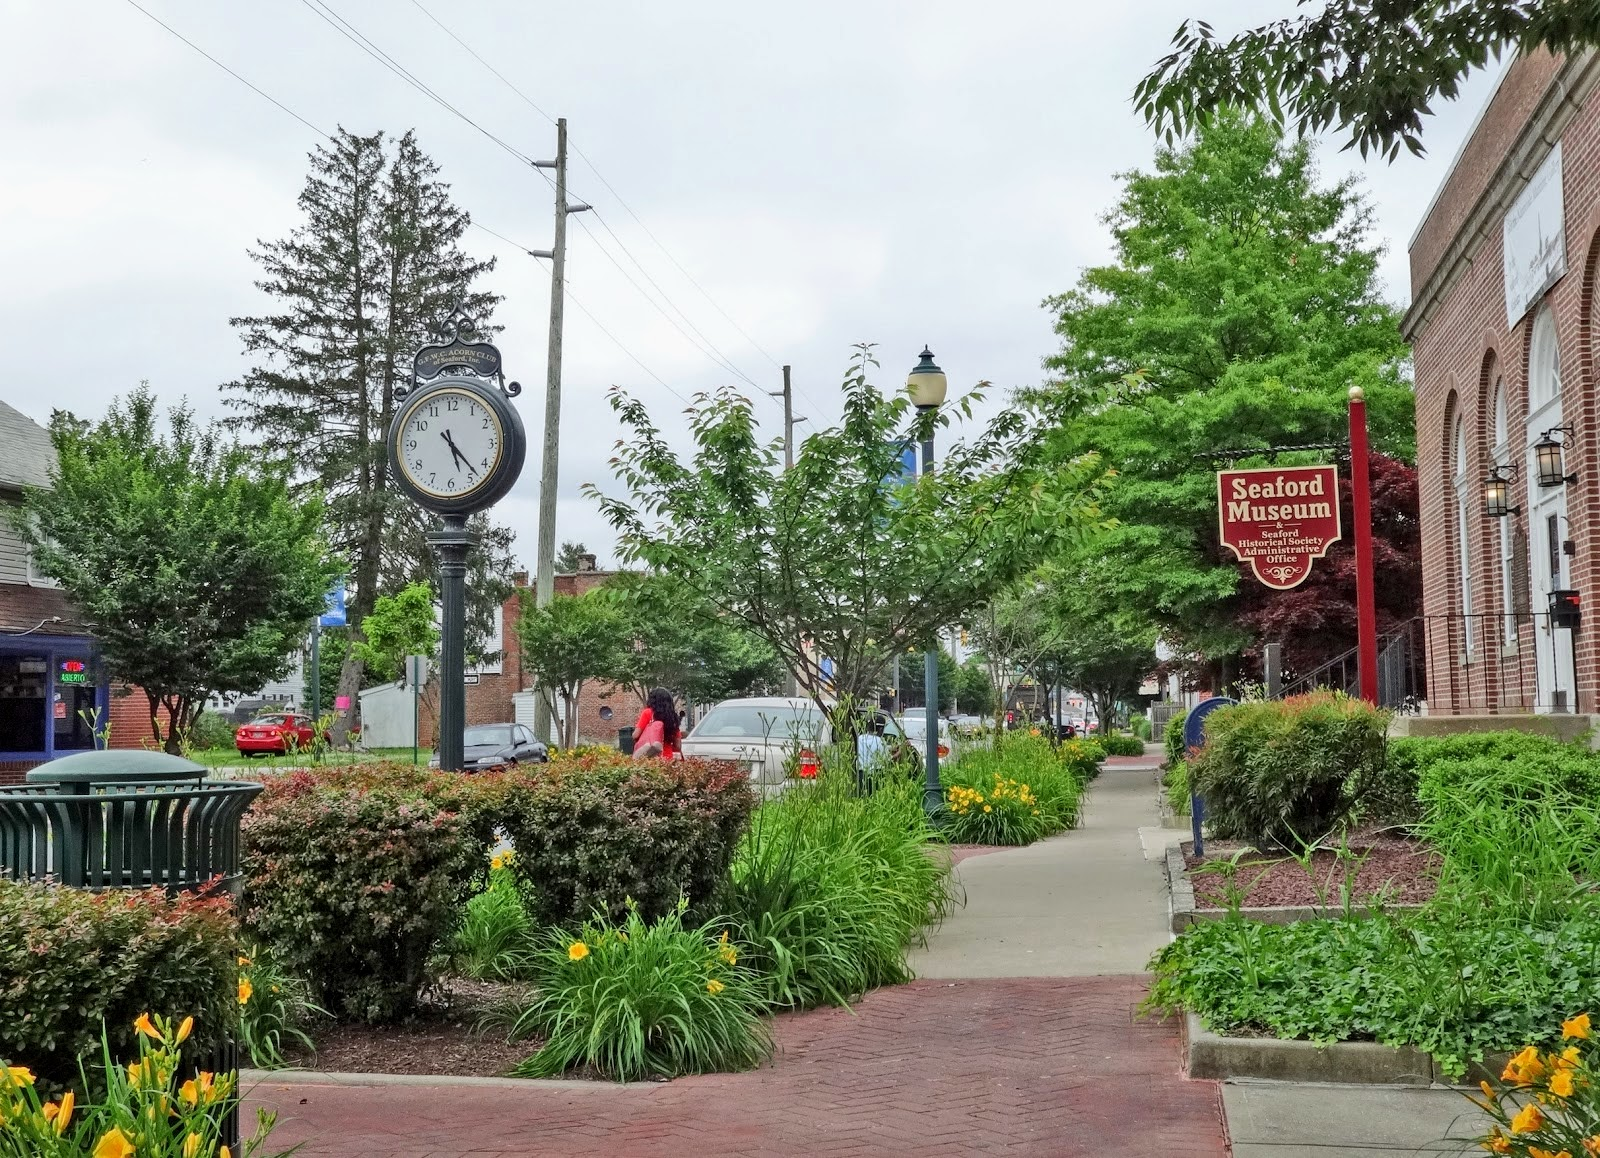 Seaford's Downtown Development District